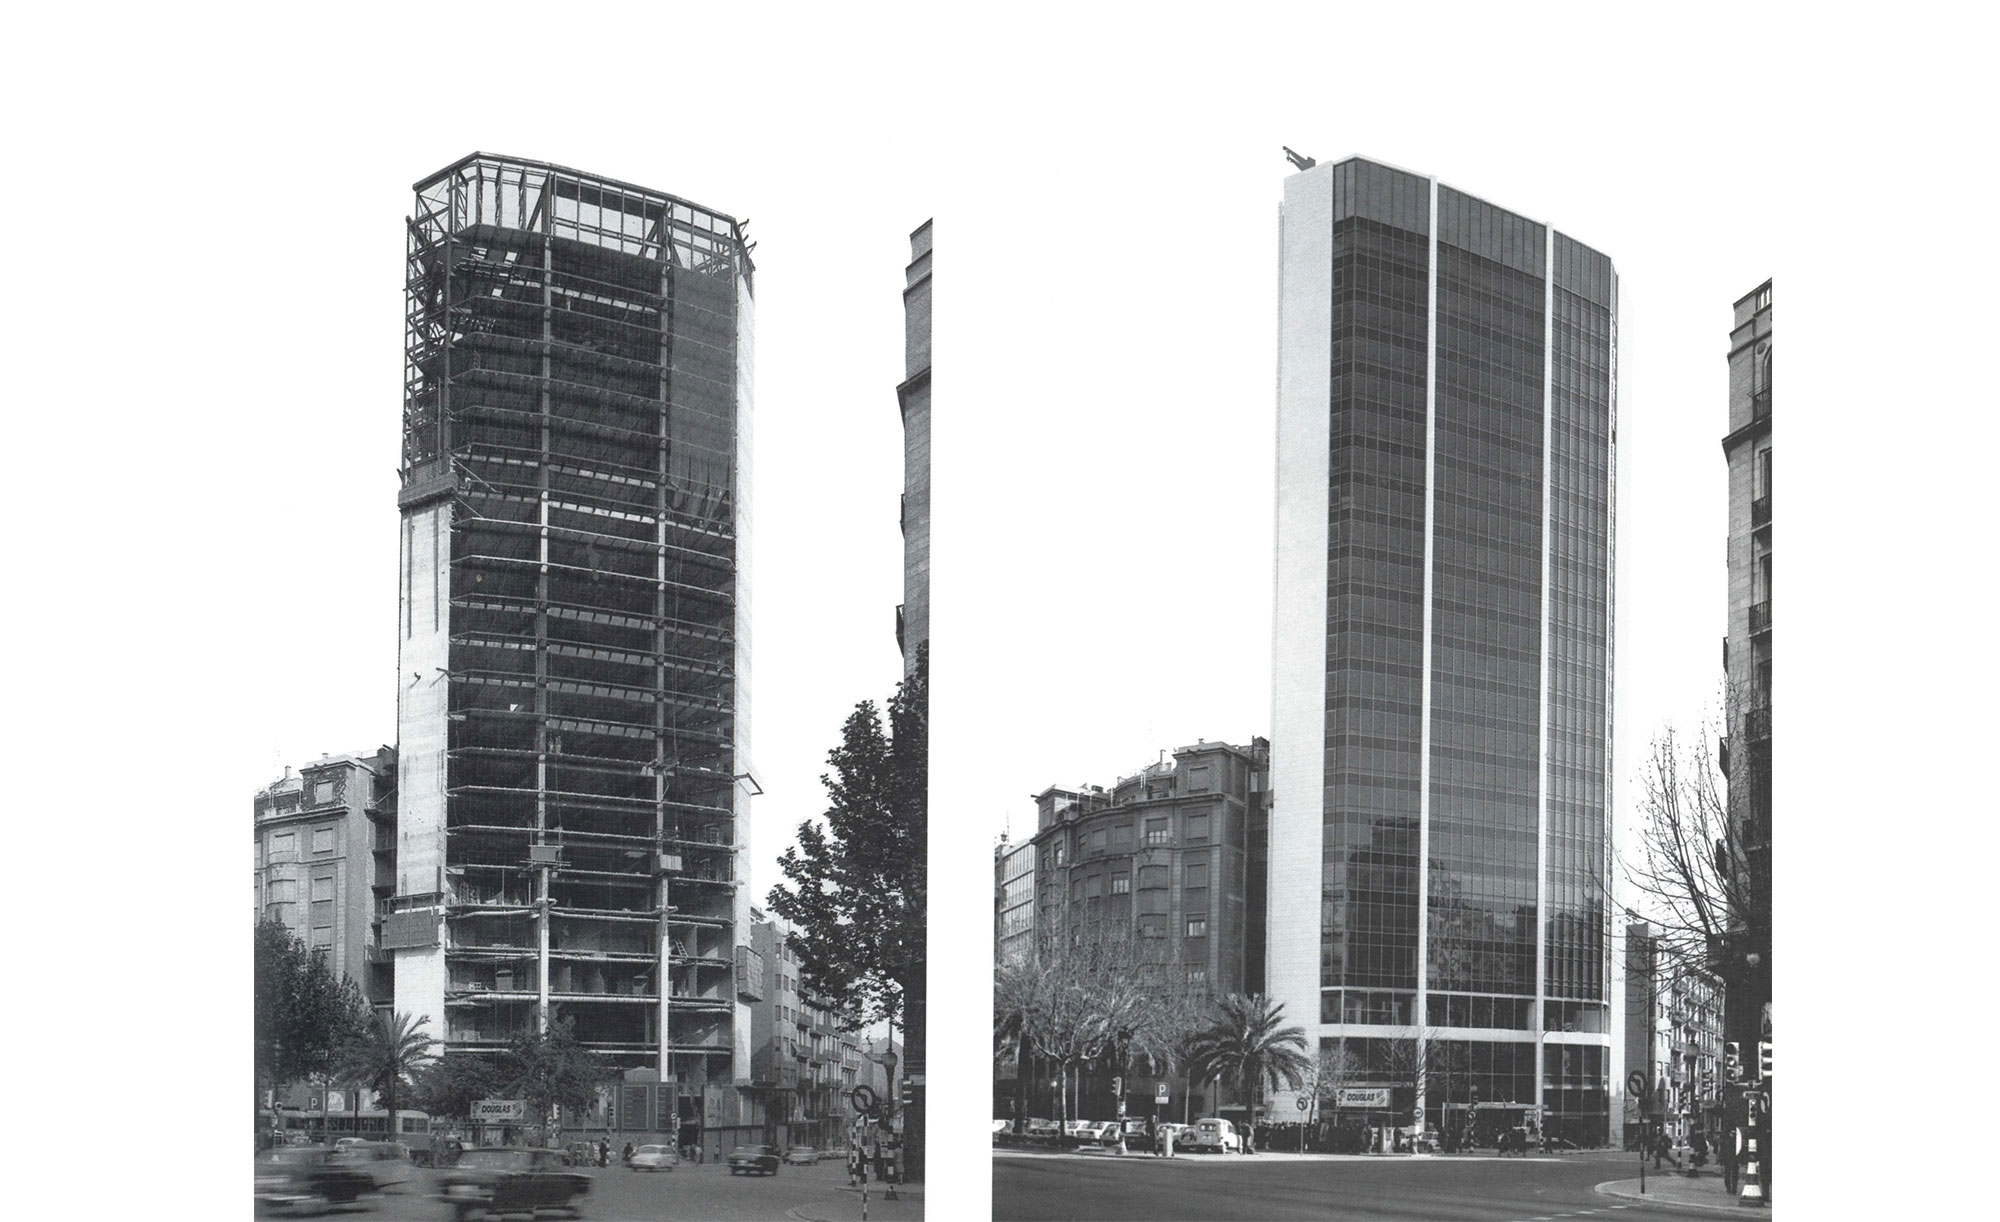 Remodelling of Banc Sabadell Tower in Barcelona